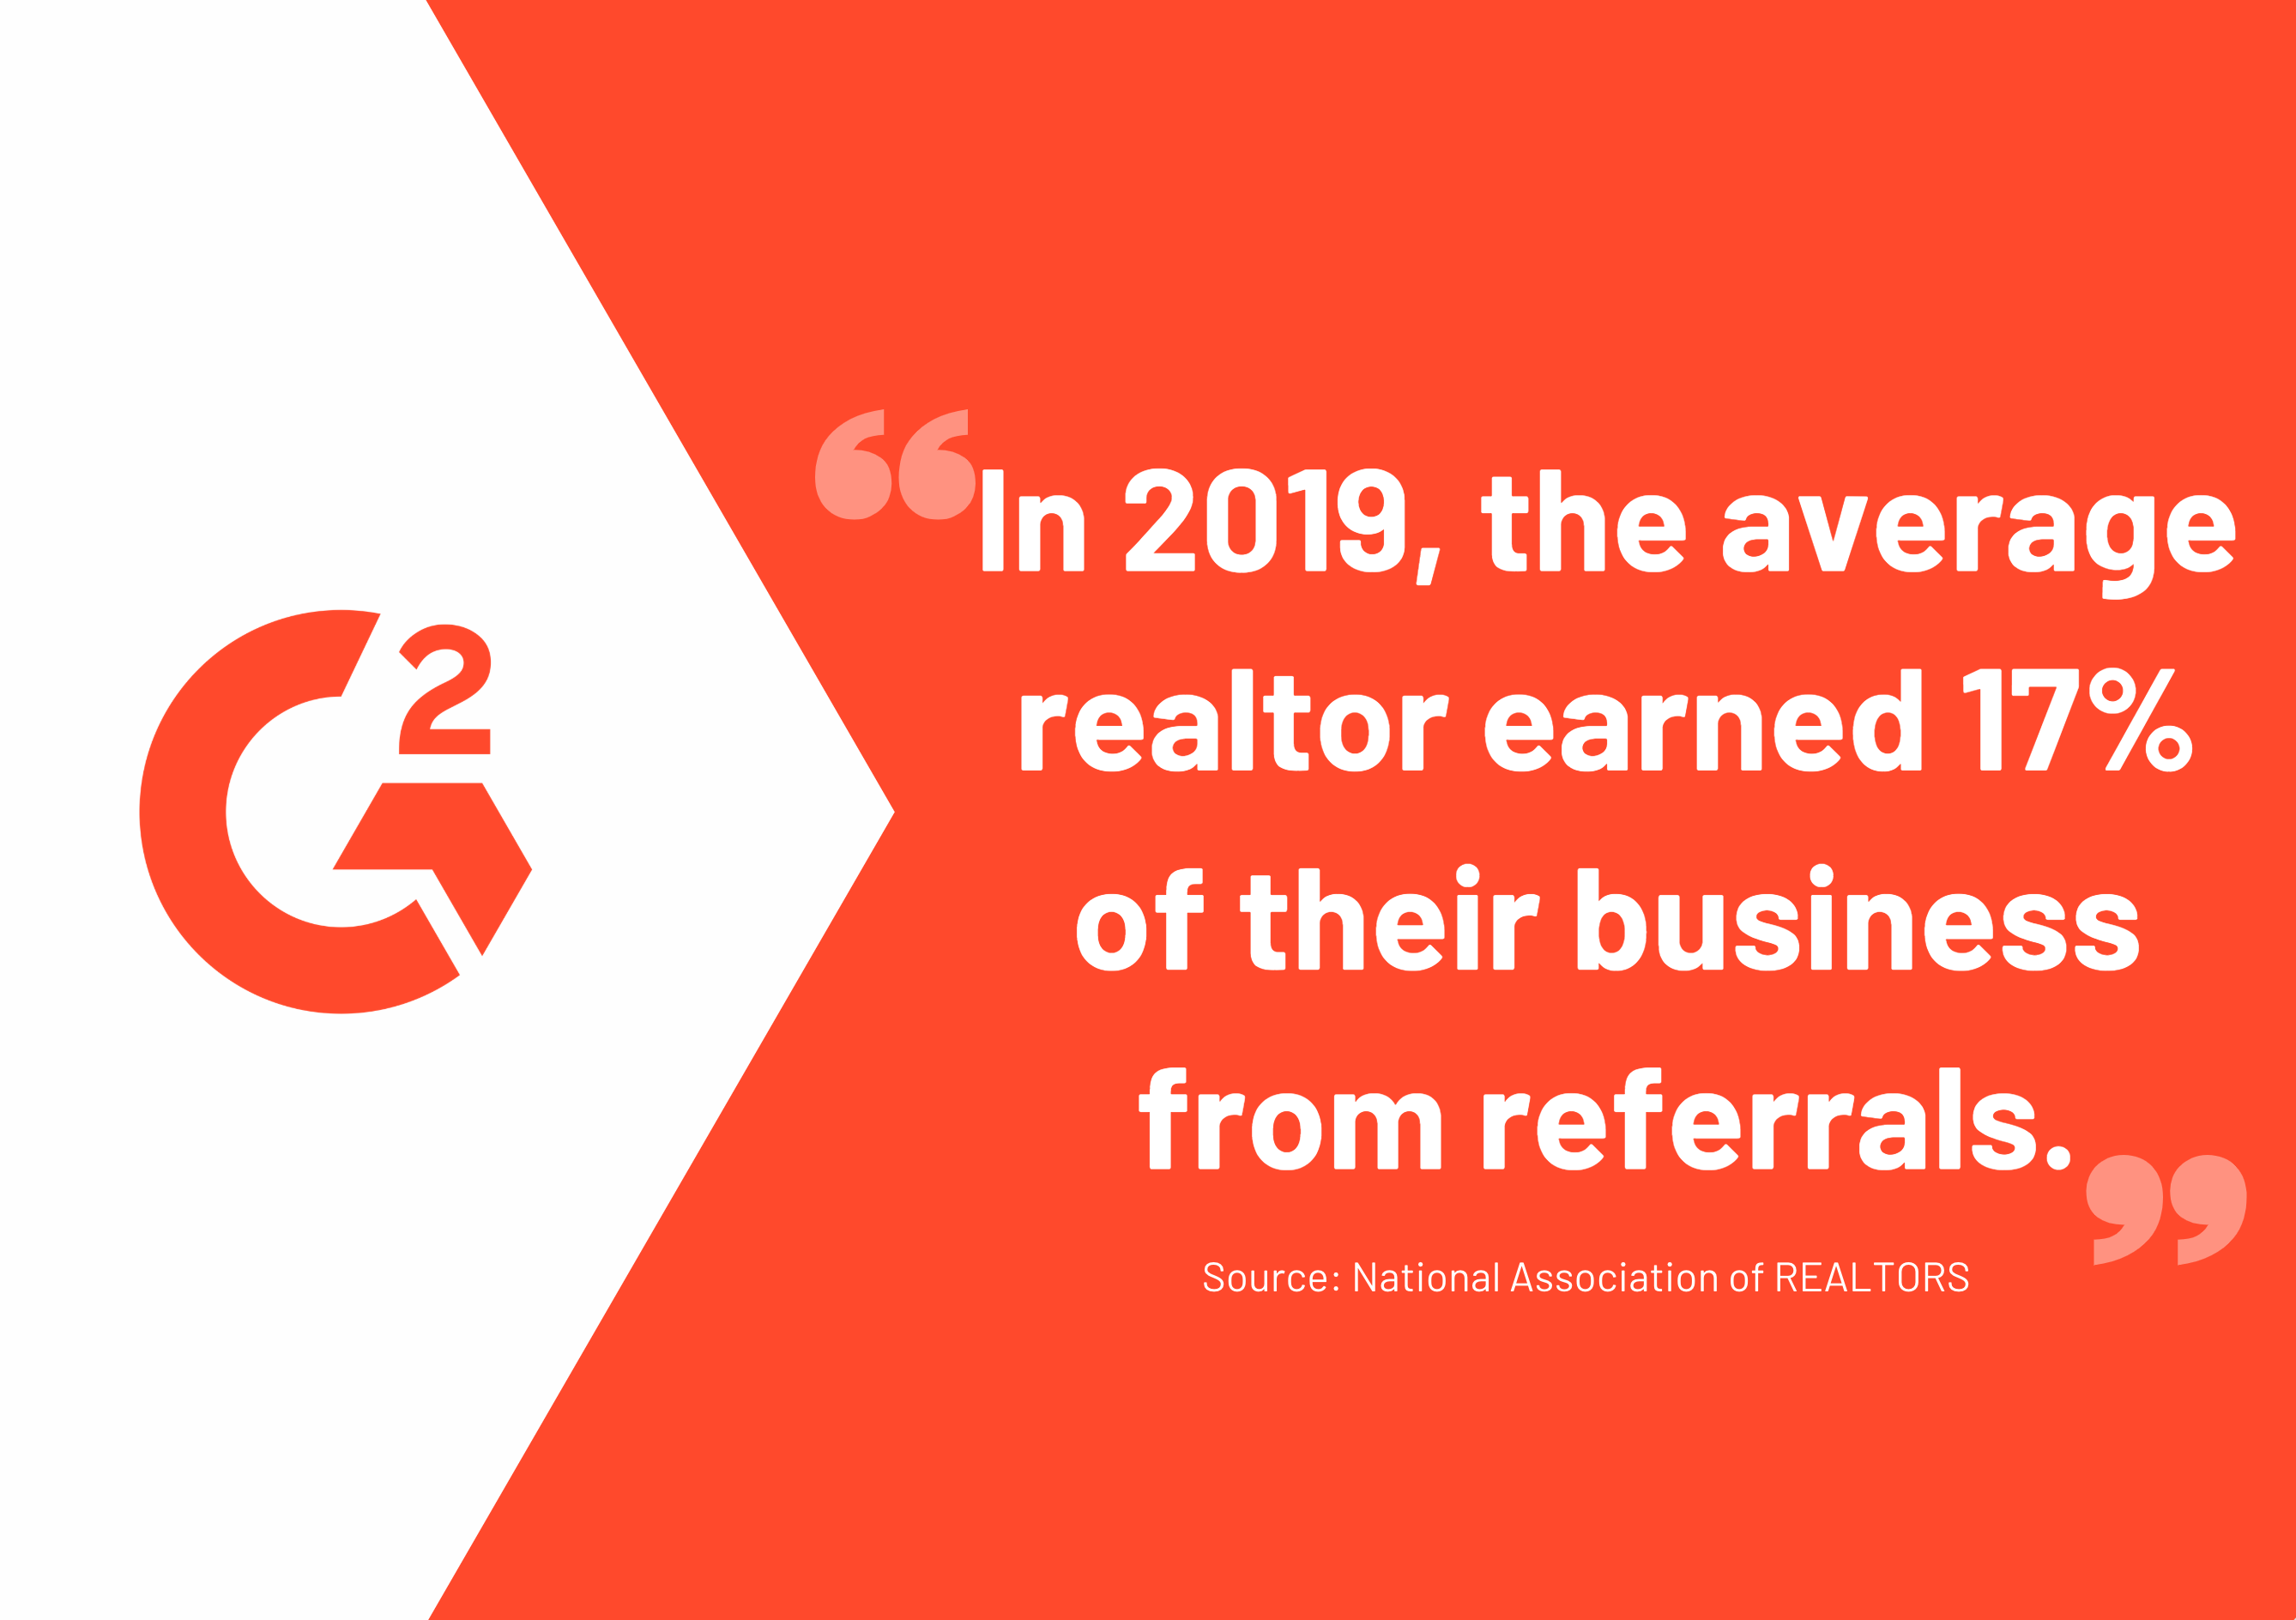 quote about real estate lead generation referral statistics